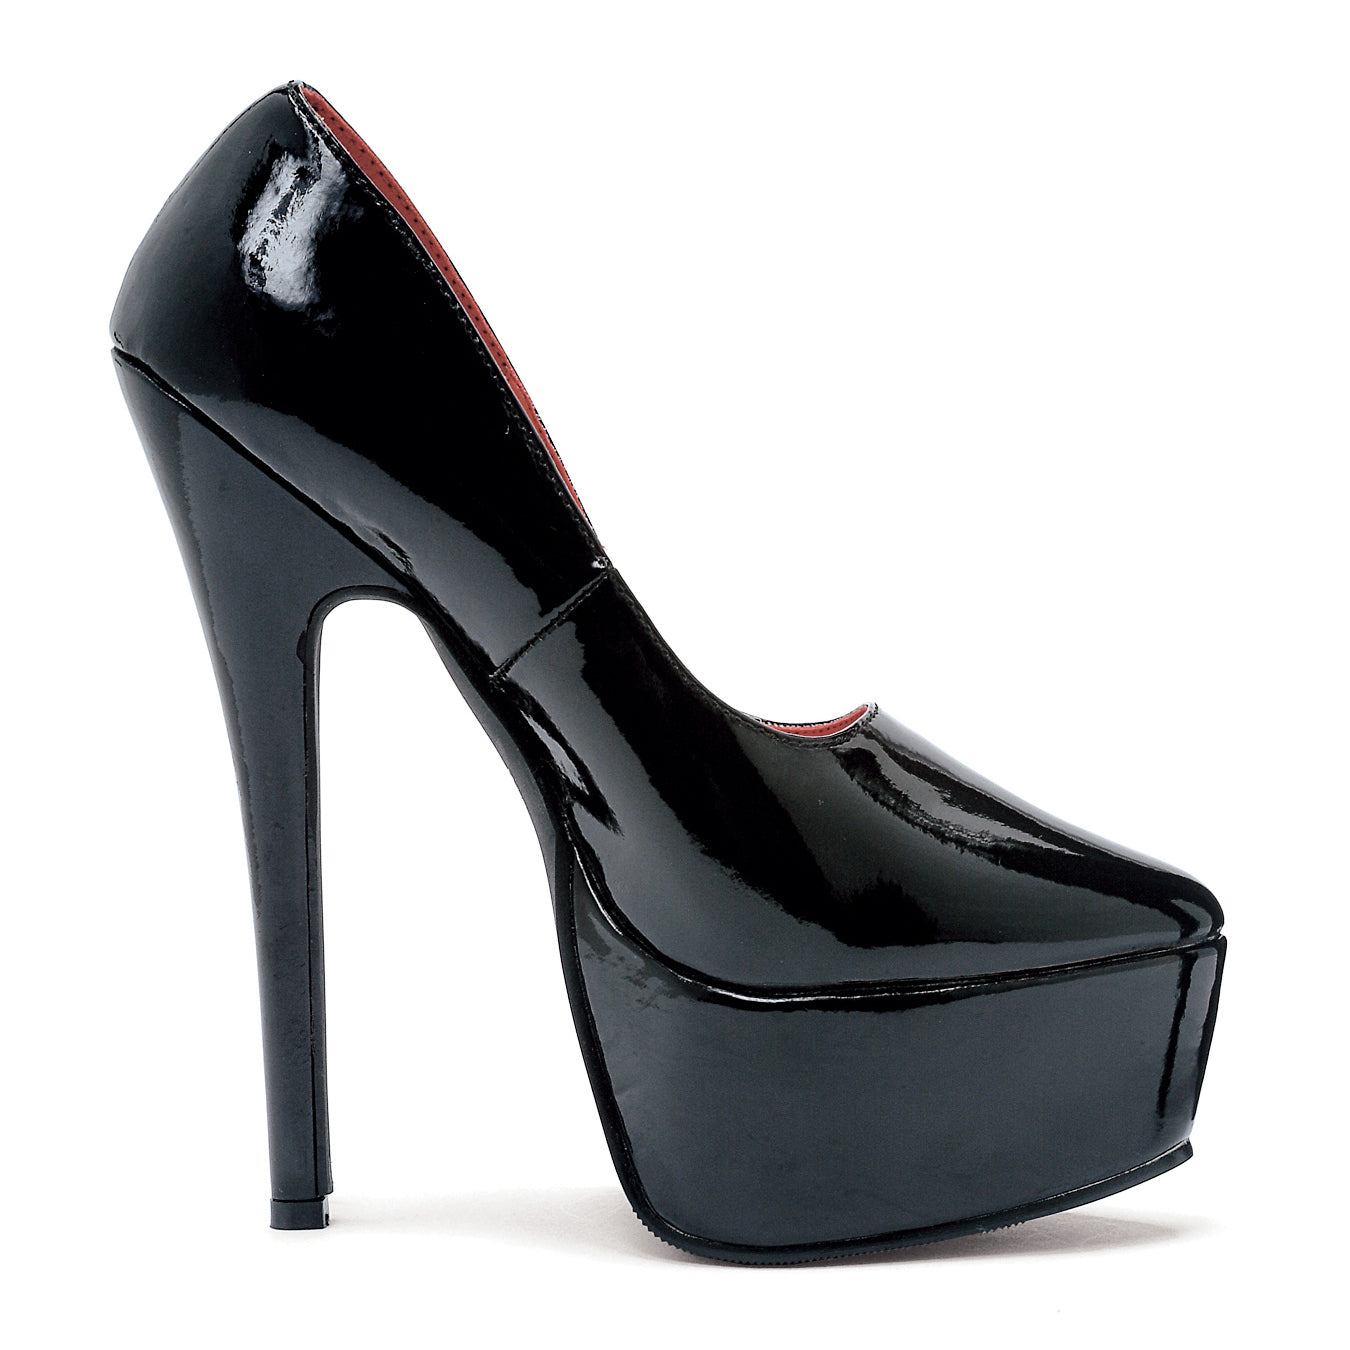 6.5 Stiletto Heel Pump